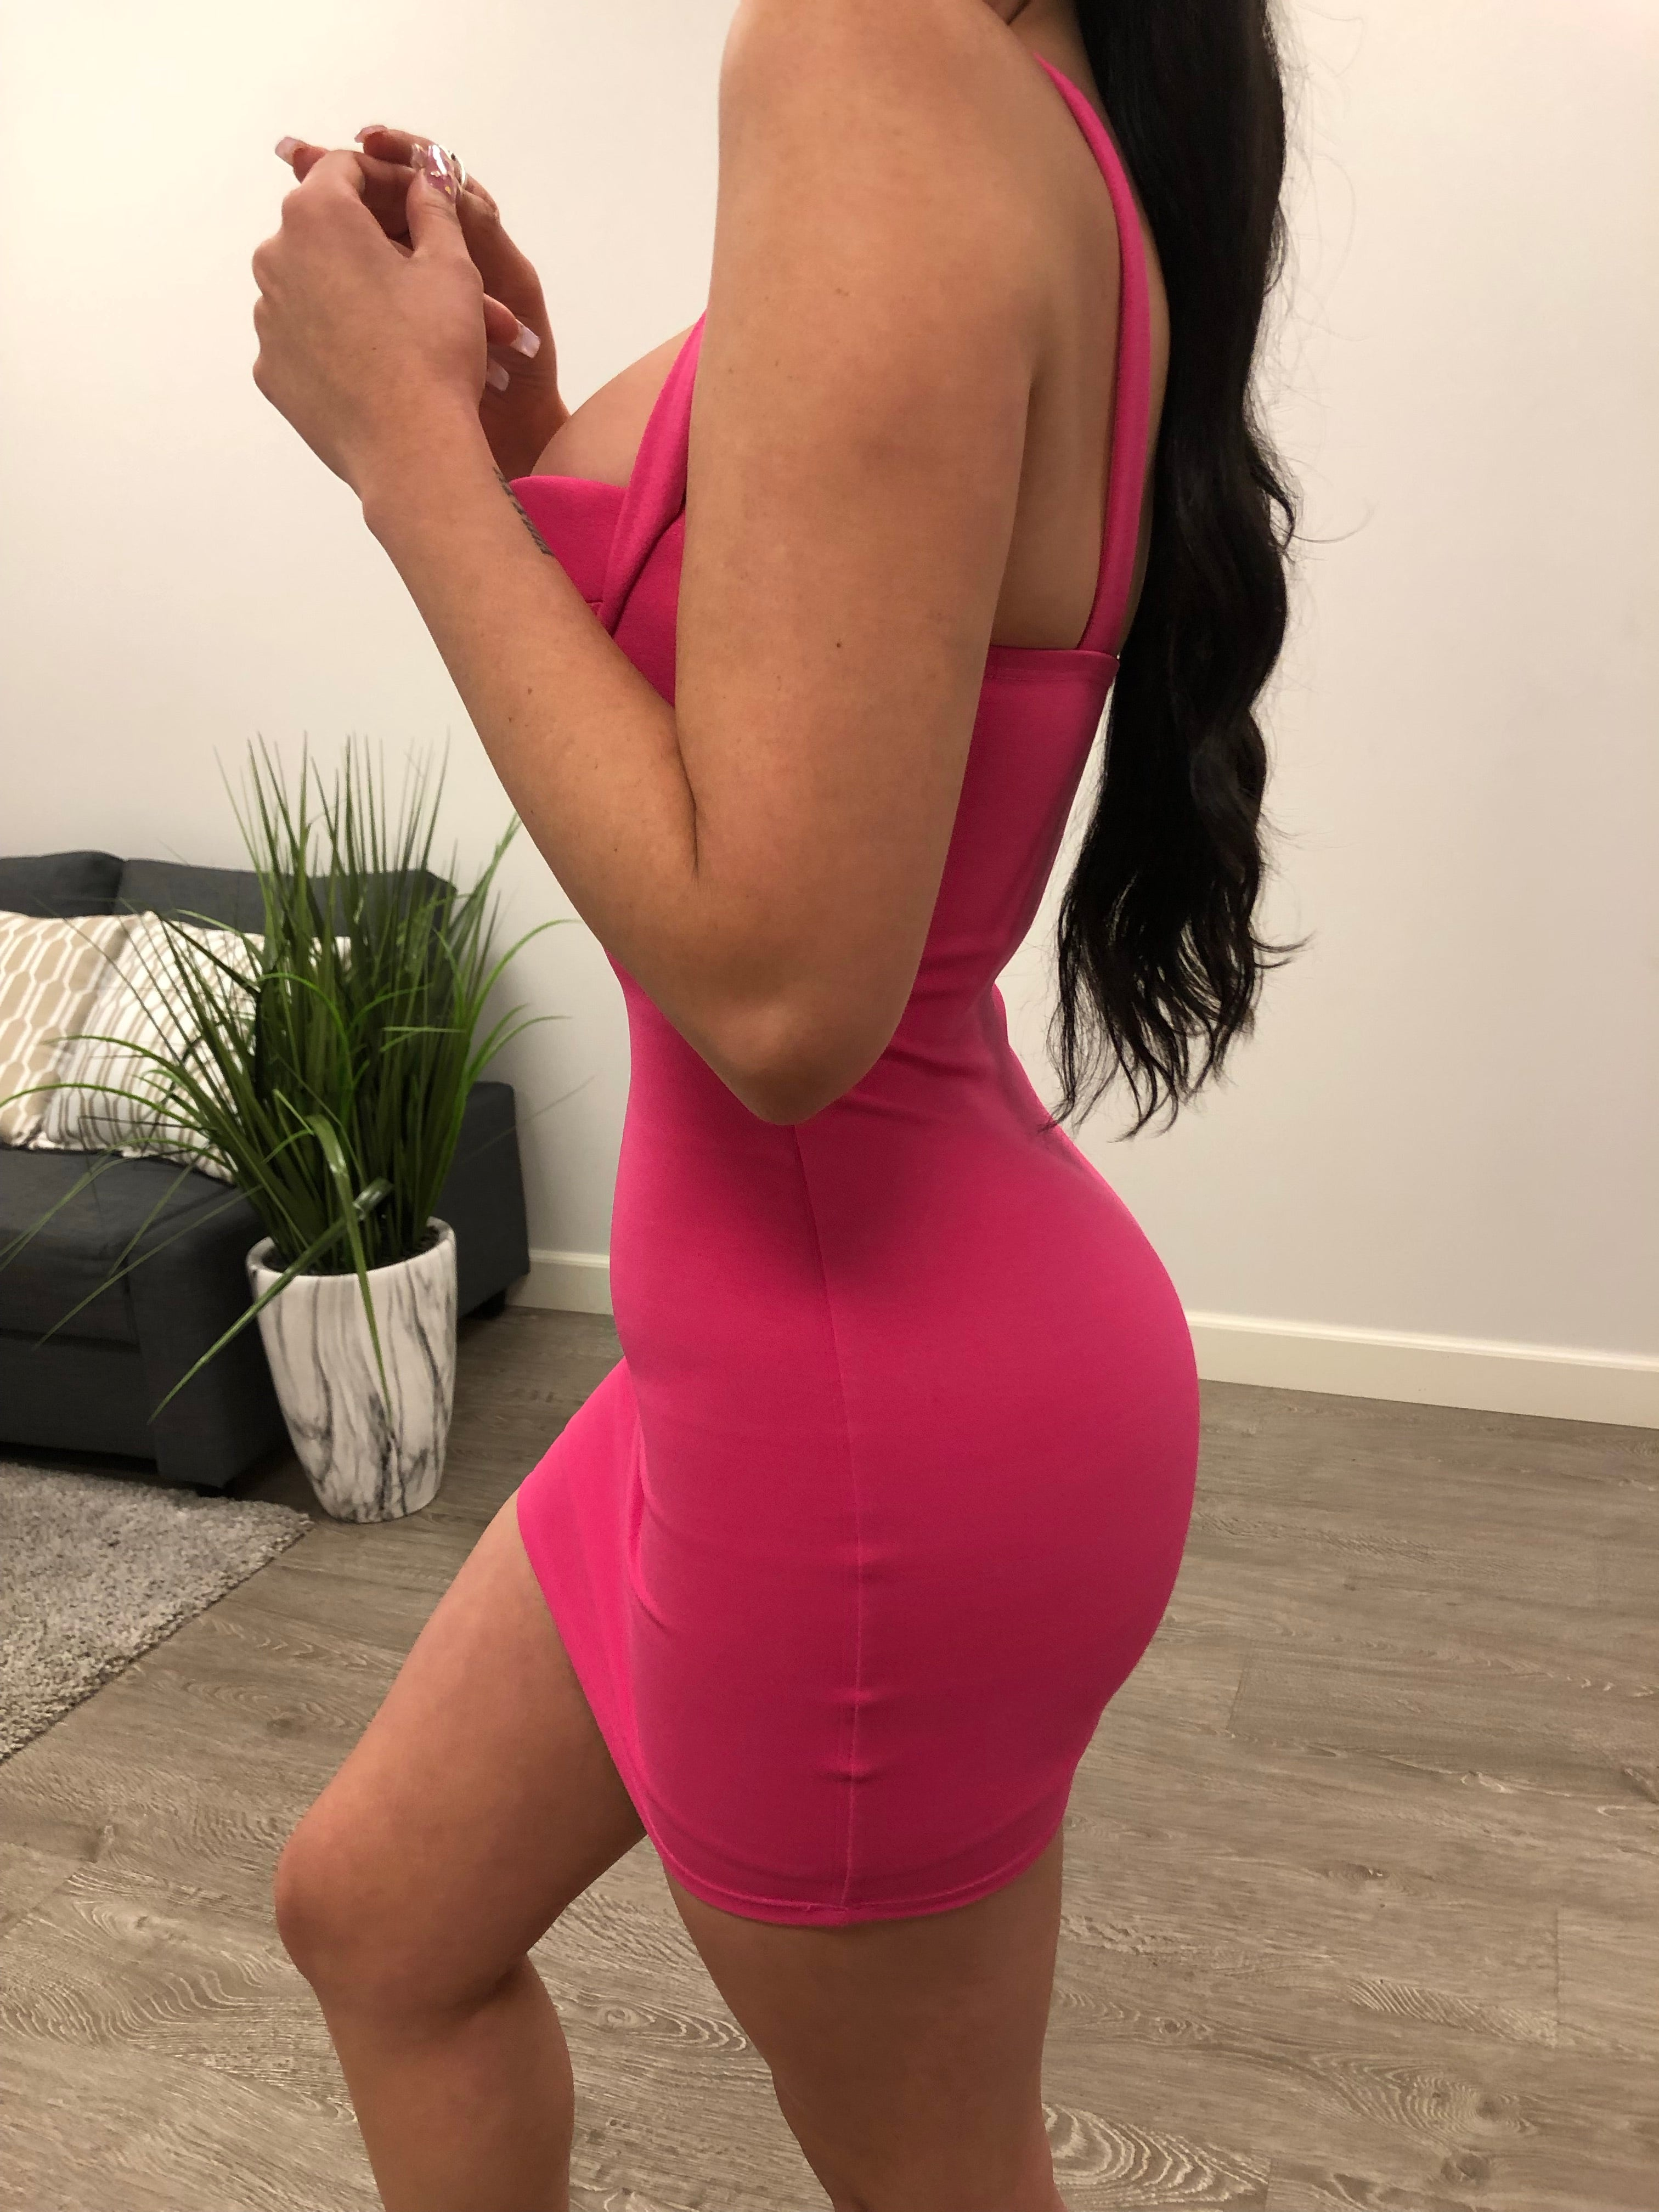 hot pink short dress. straps are not adjustable. sweet heart neckline. shows cleavage. above mid thigh length.